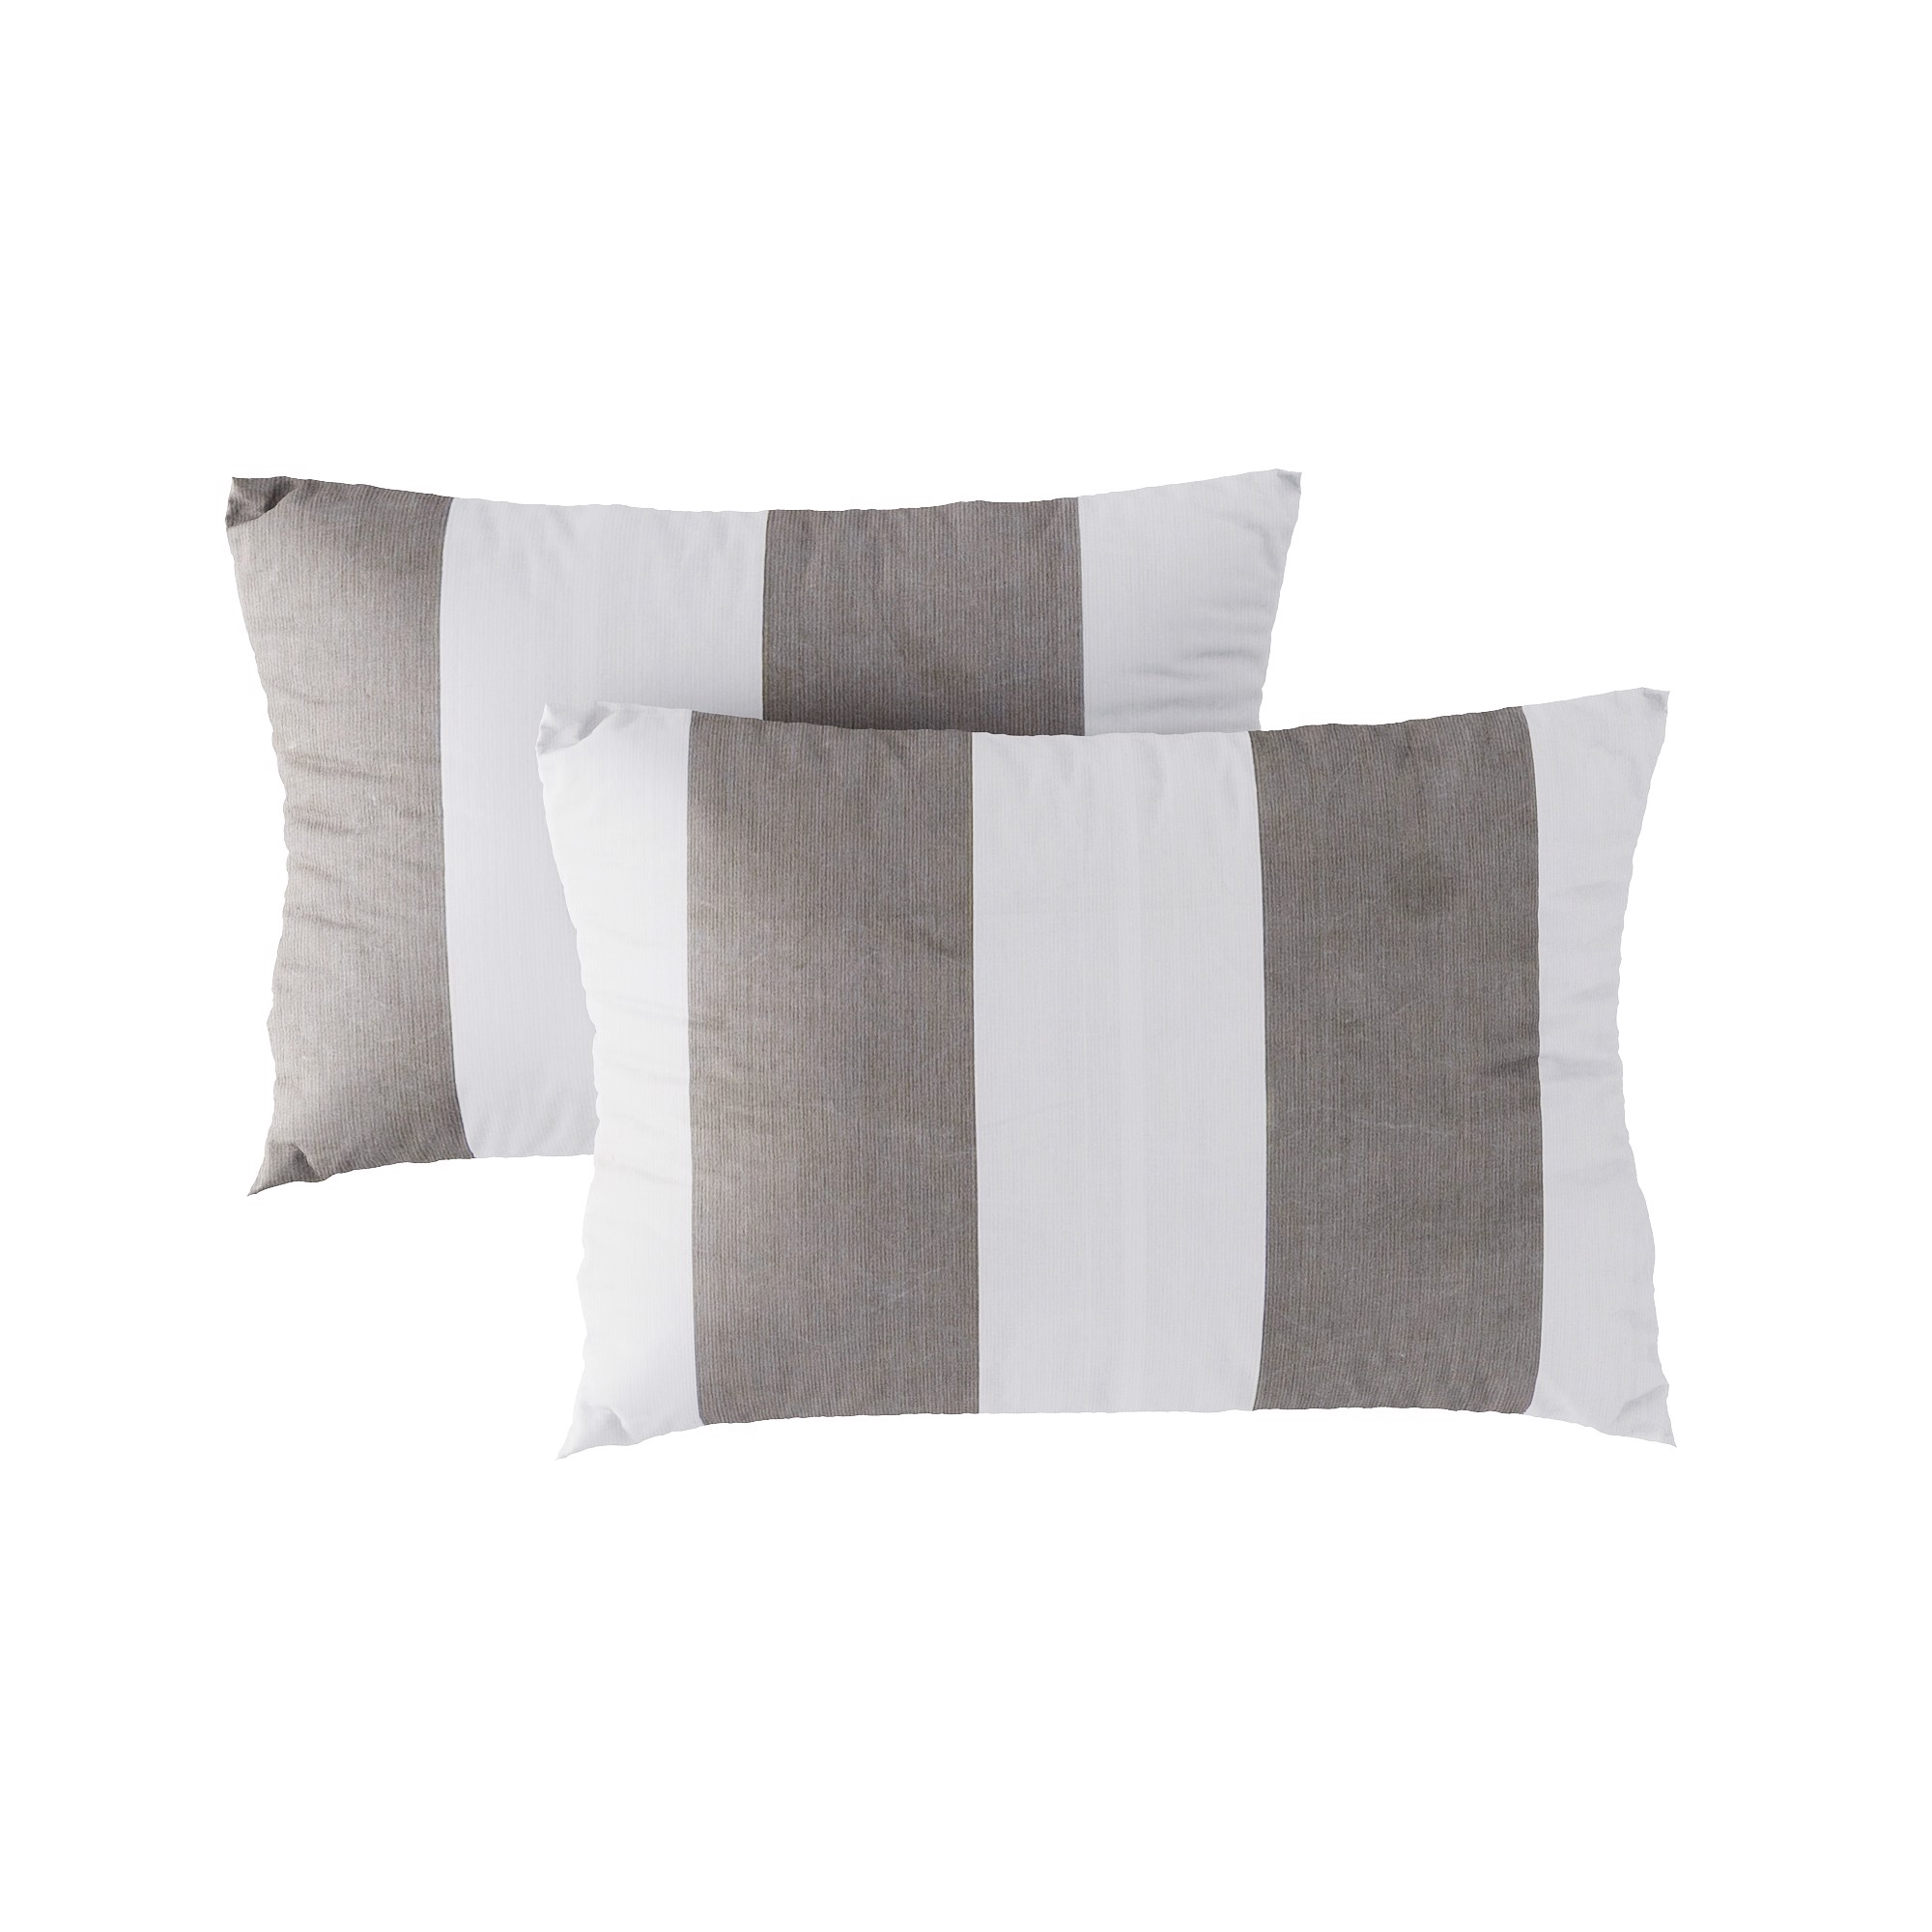 Pillow case 188 Big grey brown lines